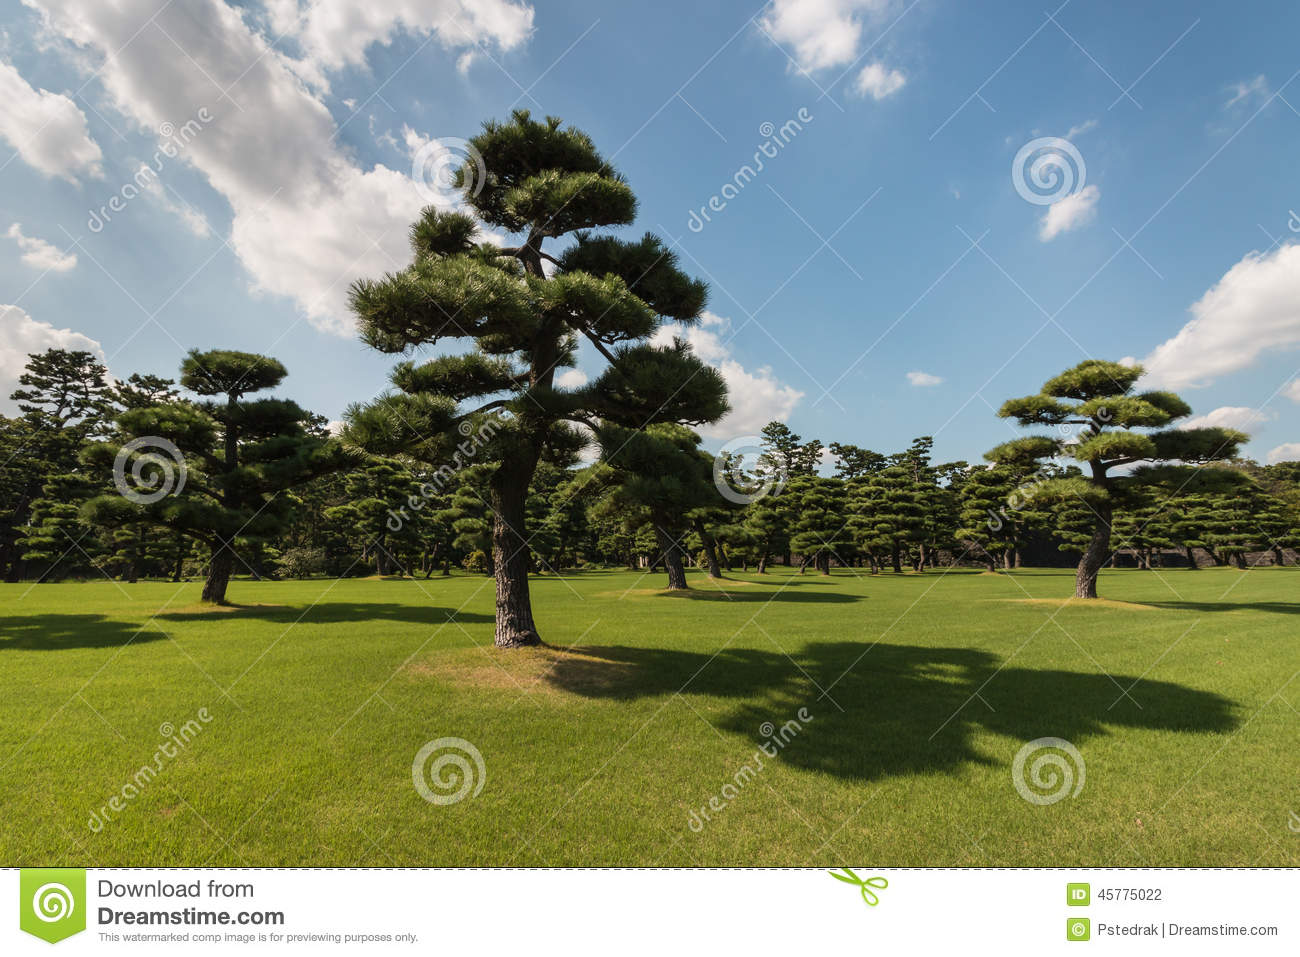 Pinos japoneses